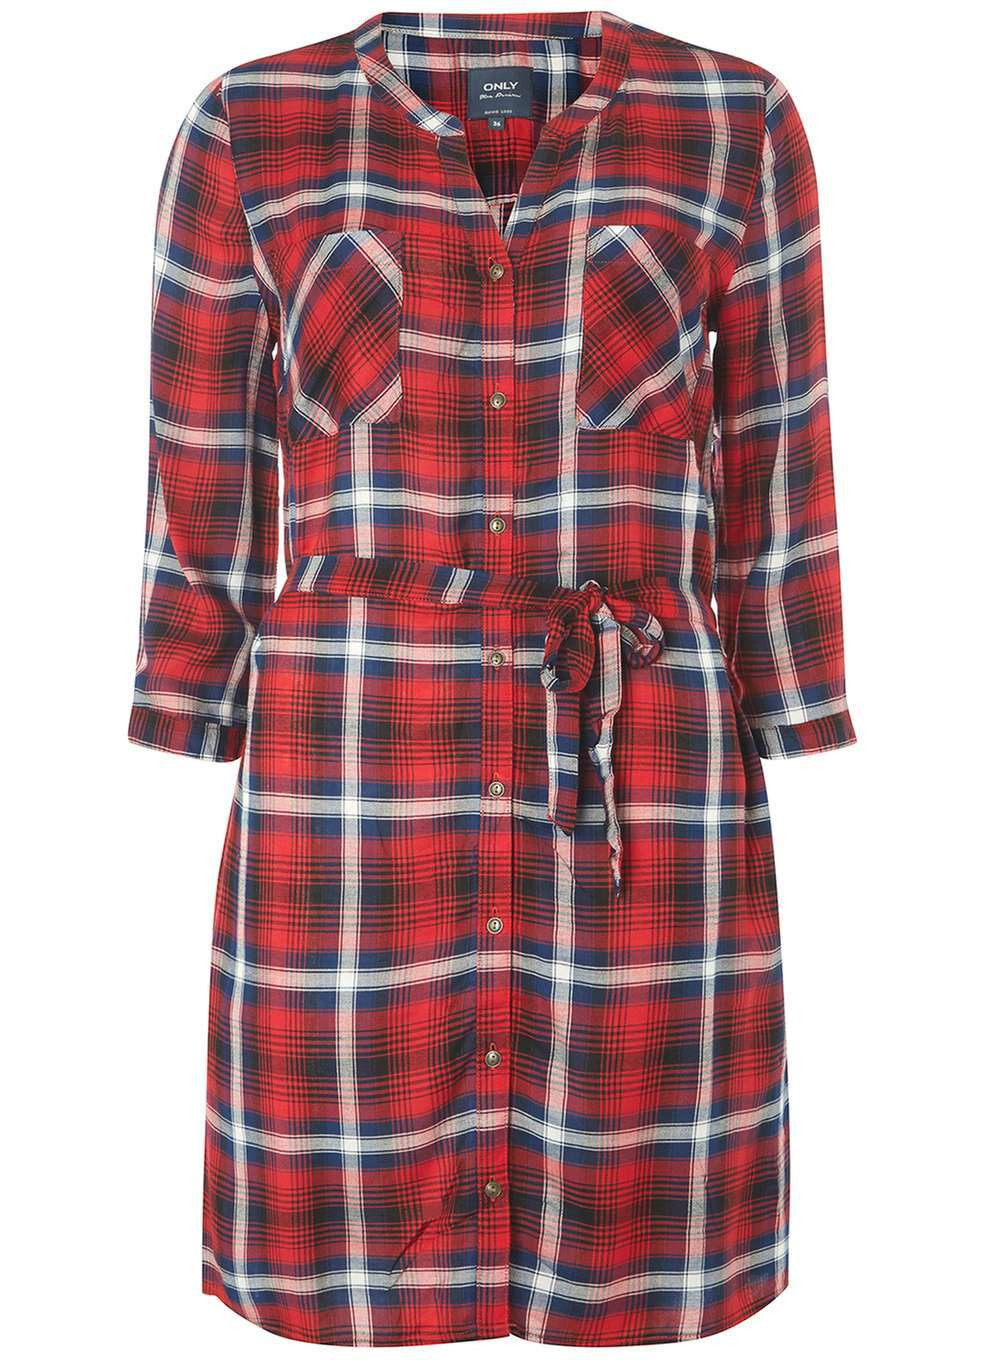 Womens **Only Red Check Shirt Dress Red - style: shift; length: mid thigh; pattern: checked/gingham; waist detail: belted waist/tie at waist/drawstring; secondary colour: white; predominant colour: true red; occasions: casual; fit: body skimming; neckline: collarstand & mandarin with v-neck; fibres: polyester/polyamide - 100%; sleeve length: 3/4 length; sleeve style: standard; pattern type: fabric; texture group: other - light to midweight; multicoloured: multicoloured; season: a/w 2016; wardrobe: highlight